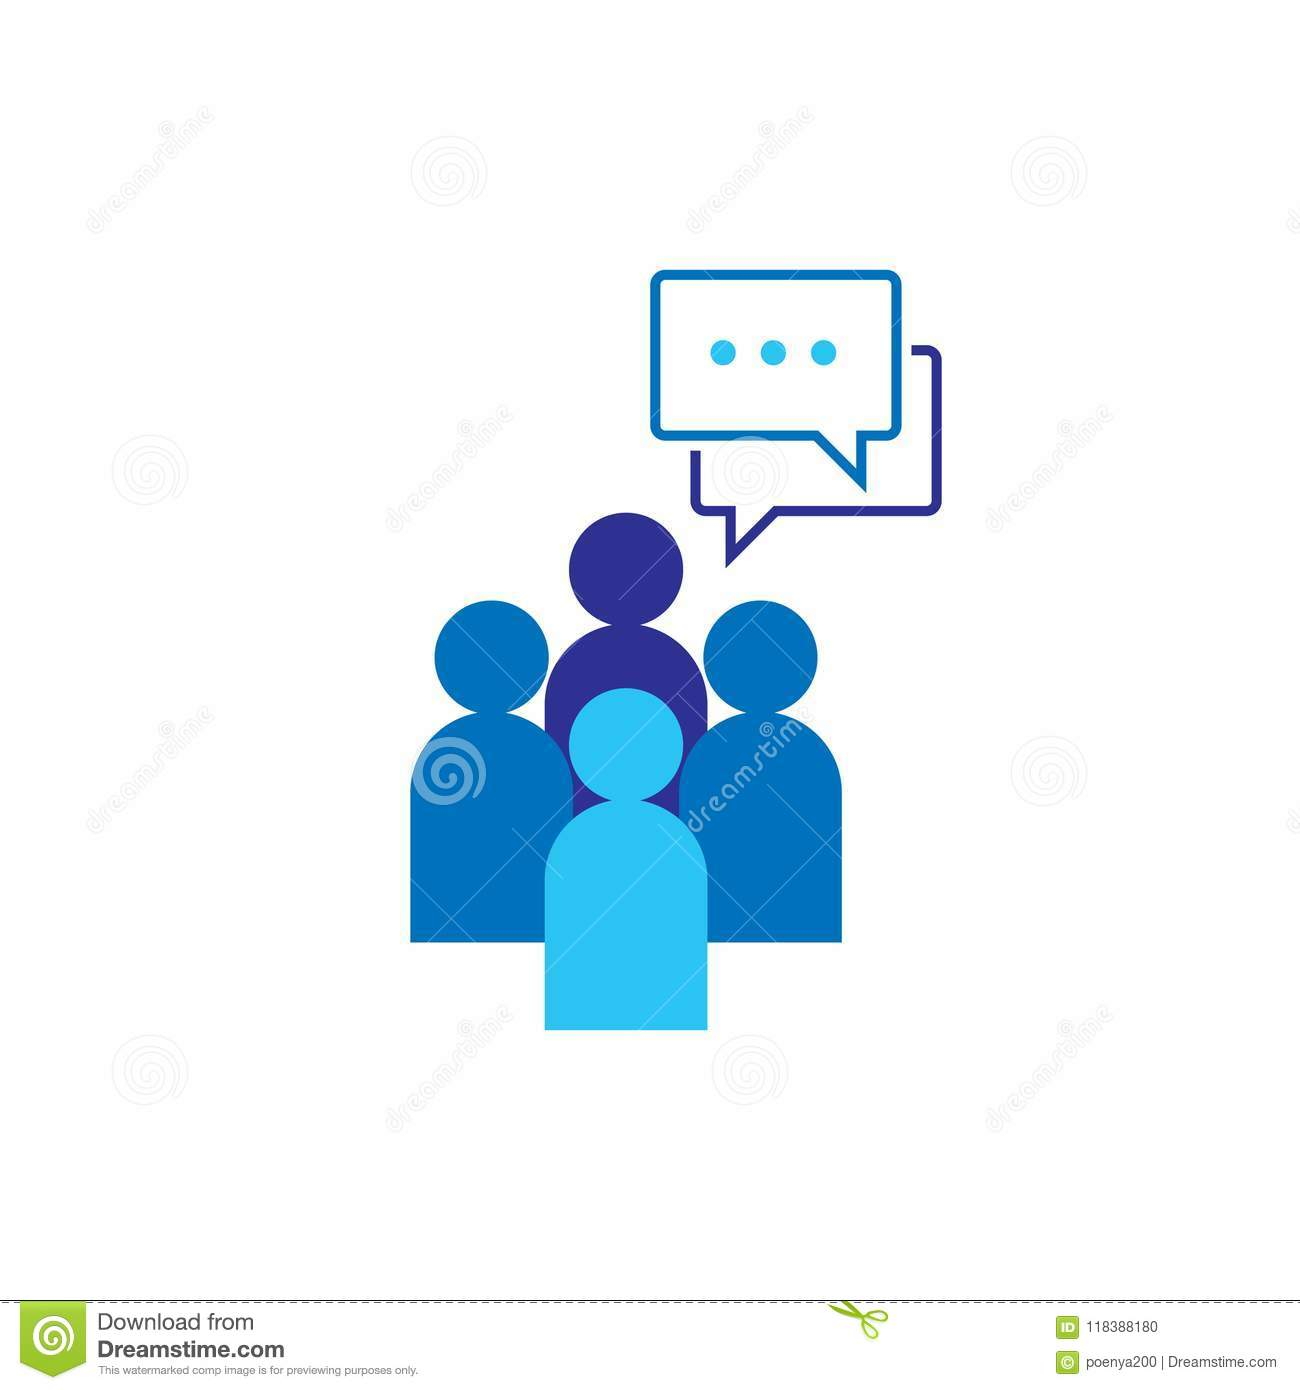 People Icon. Social talk network group logo symbol. Business corporate team working together. Crowd sign. Leadership or community